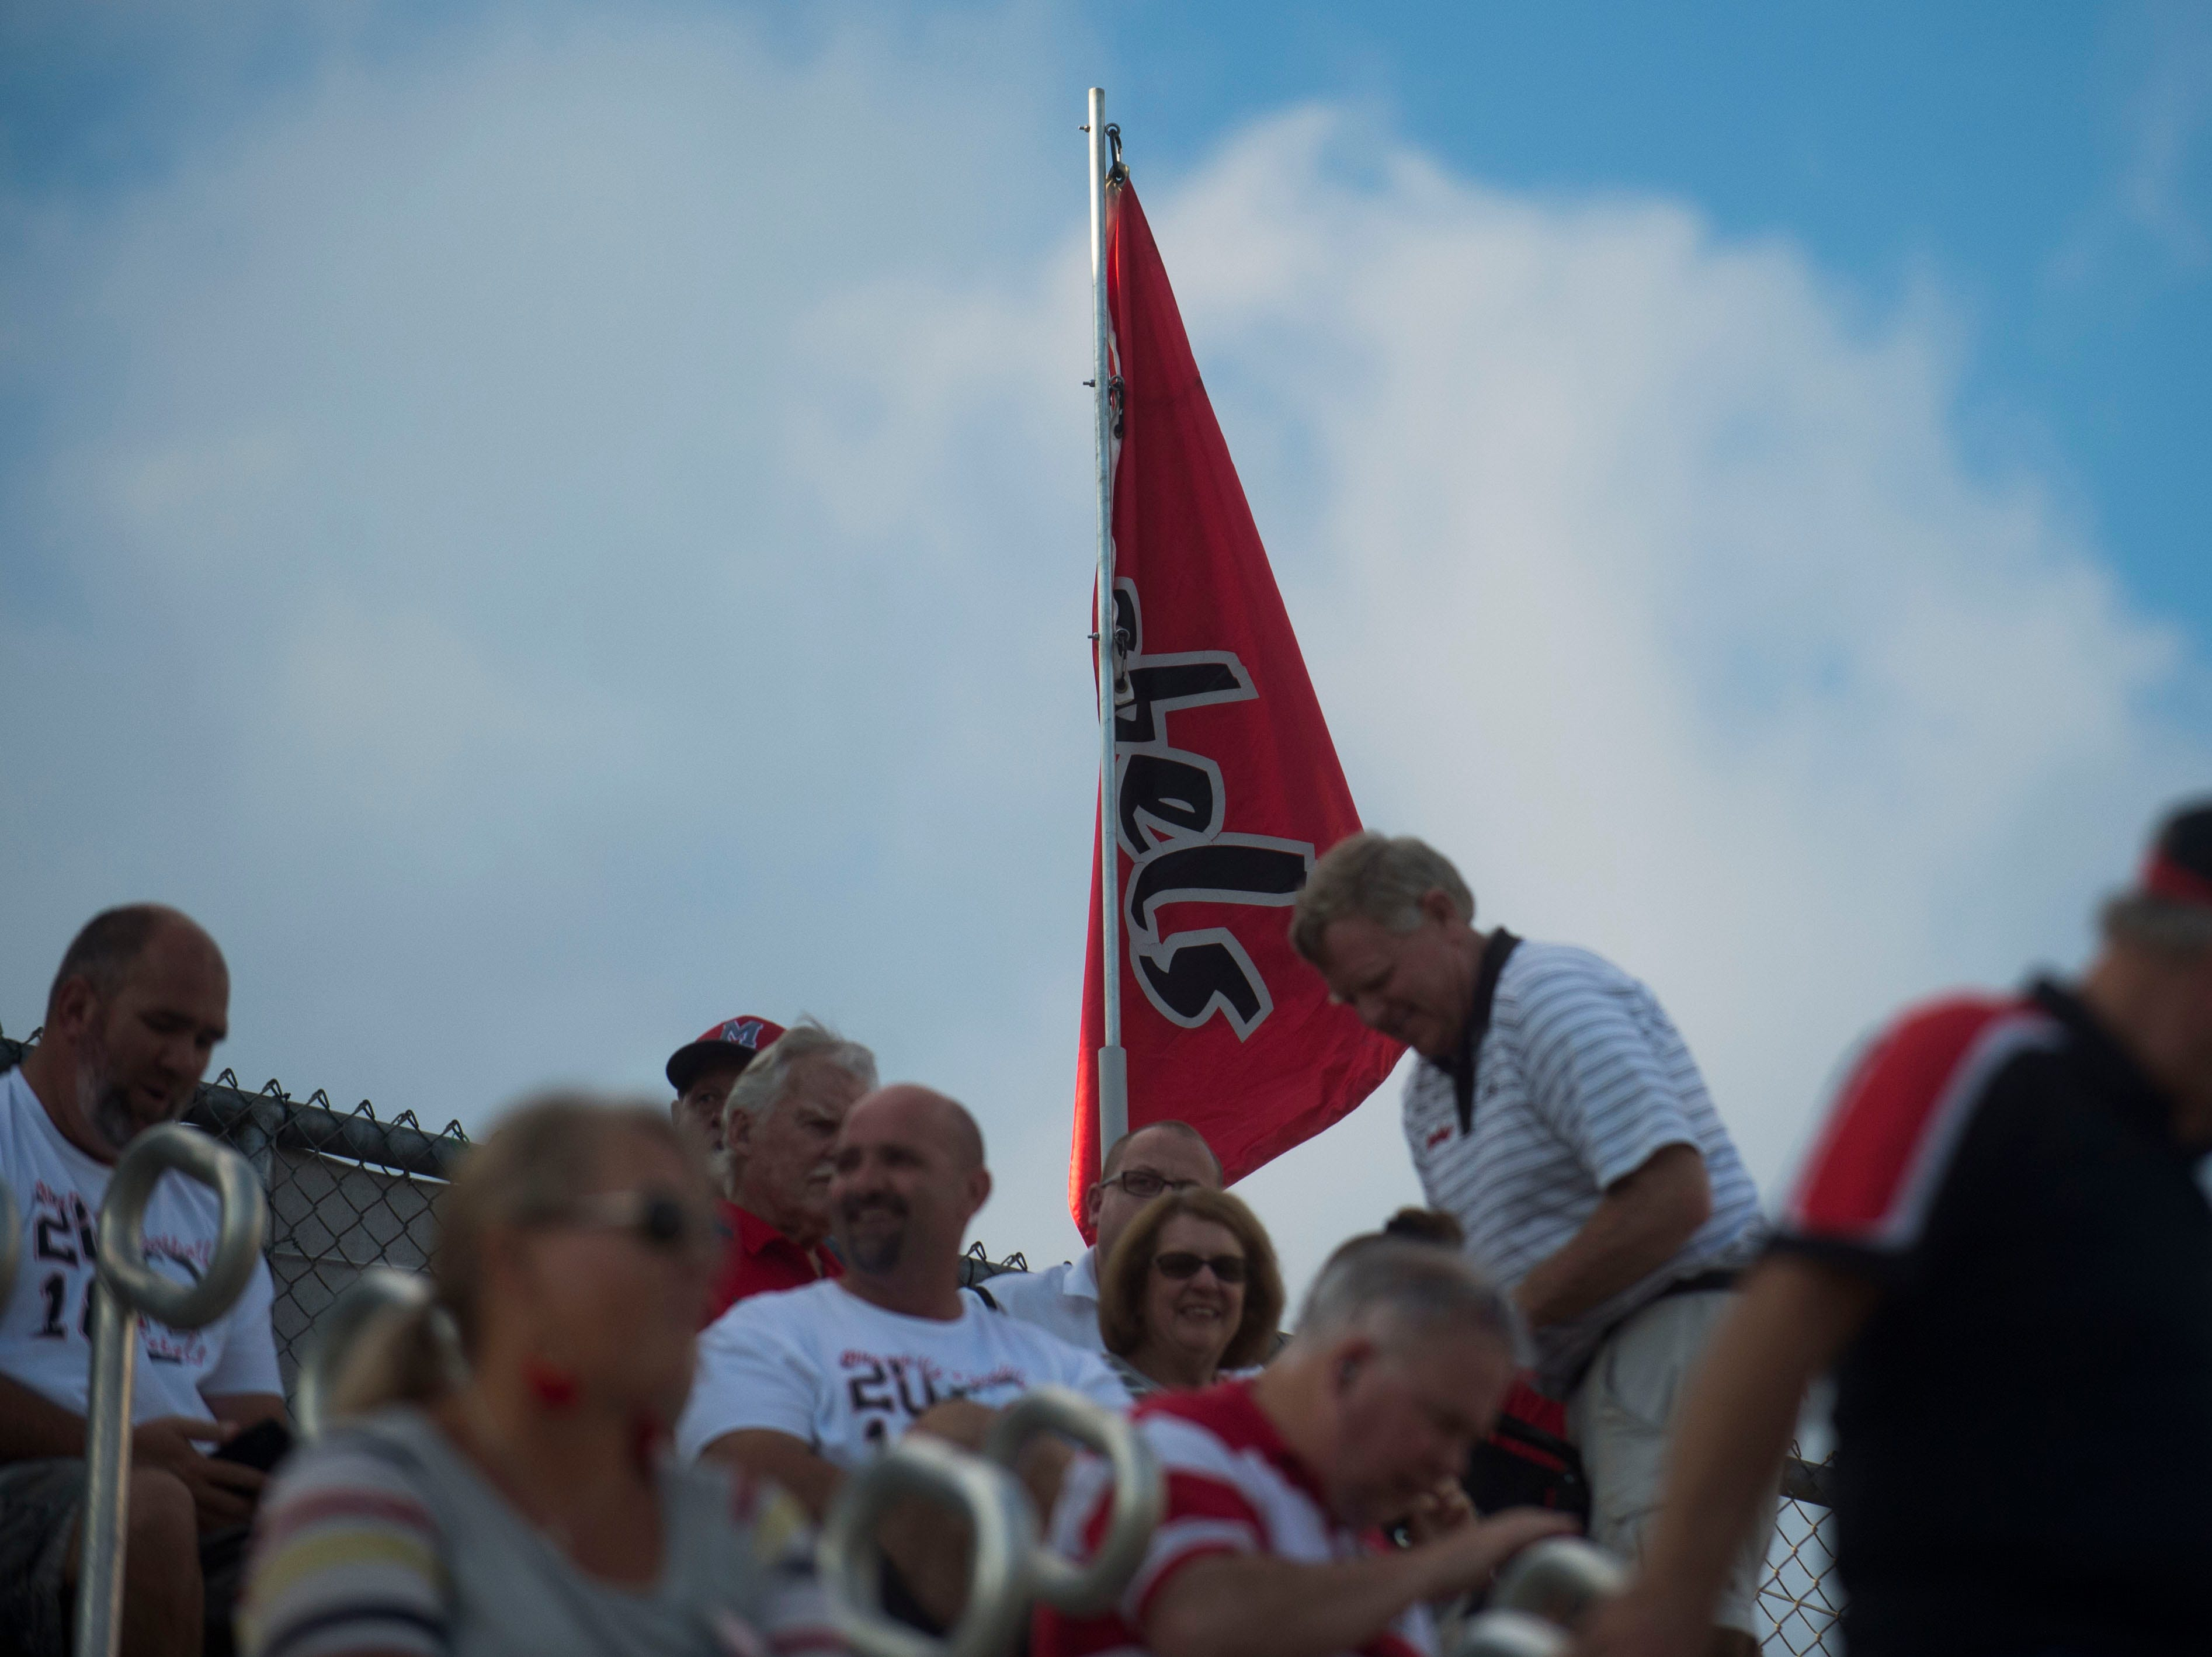 Maryville fans get situated in the stands before a game between Cleveland and Maryville at Maryville Thursday, Oct. 4, 2018.